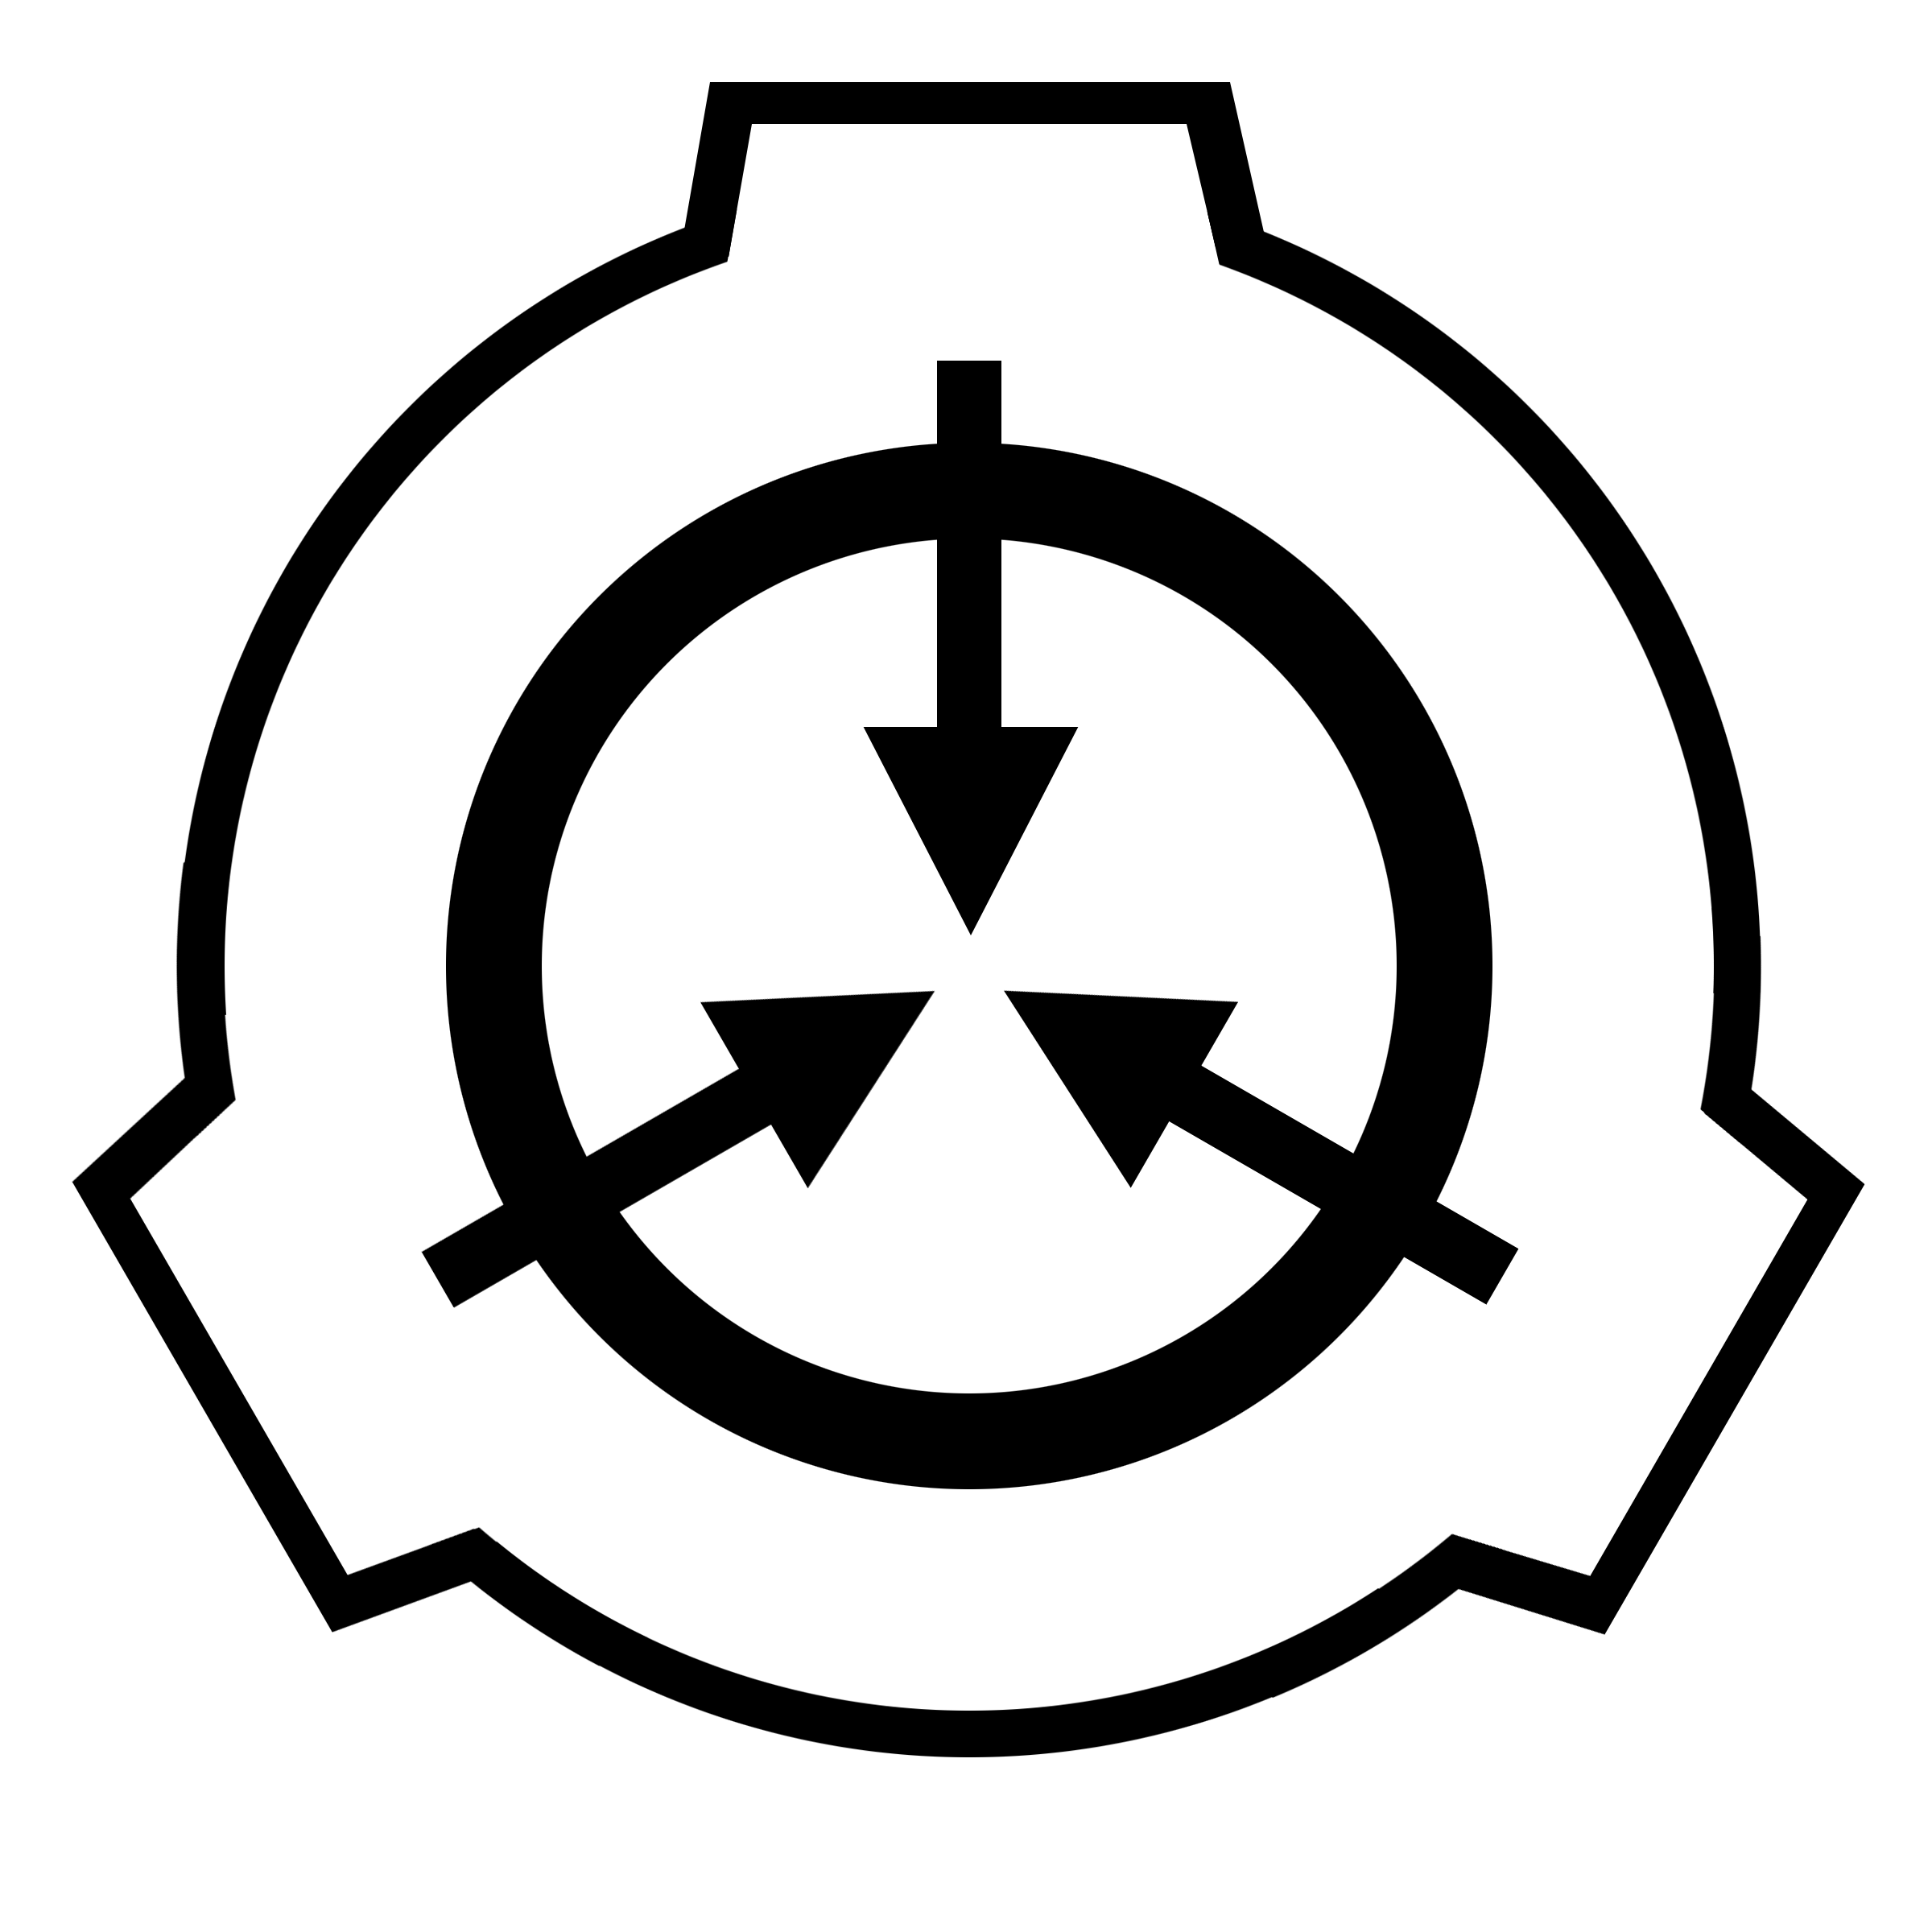 File:Logo of the SCP Foundation.png - Wikipedia image black and white